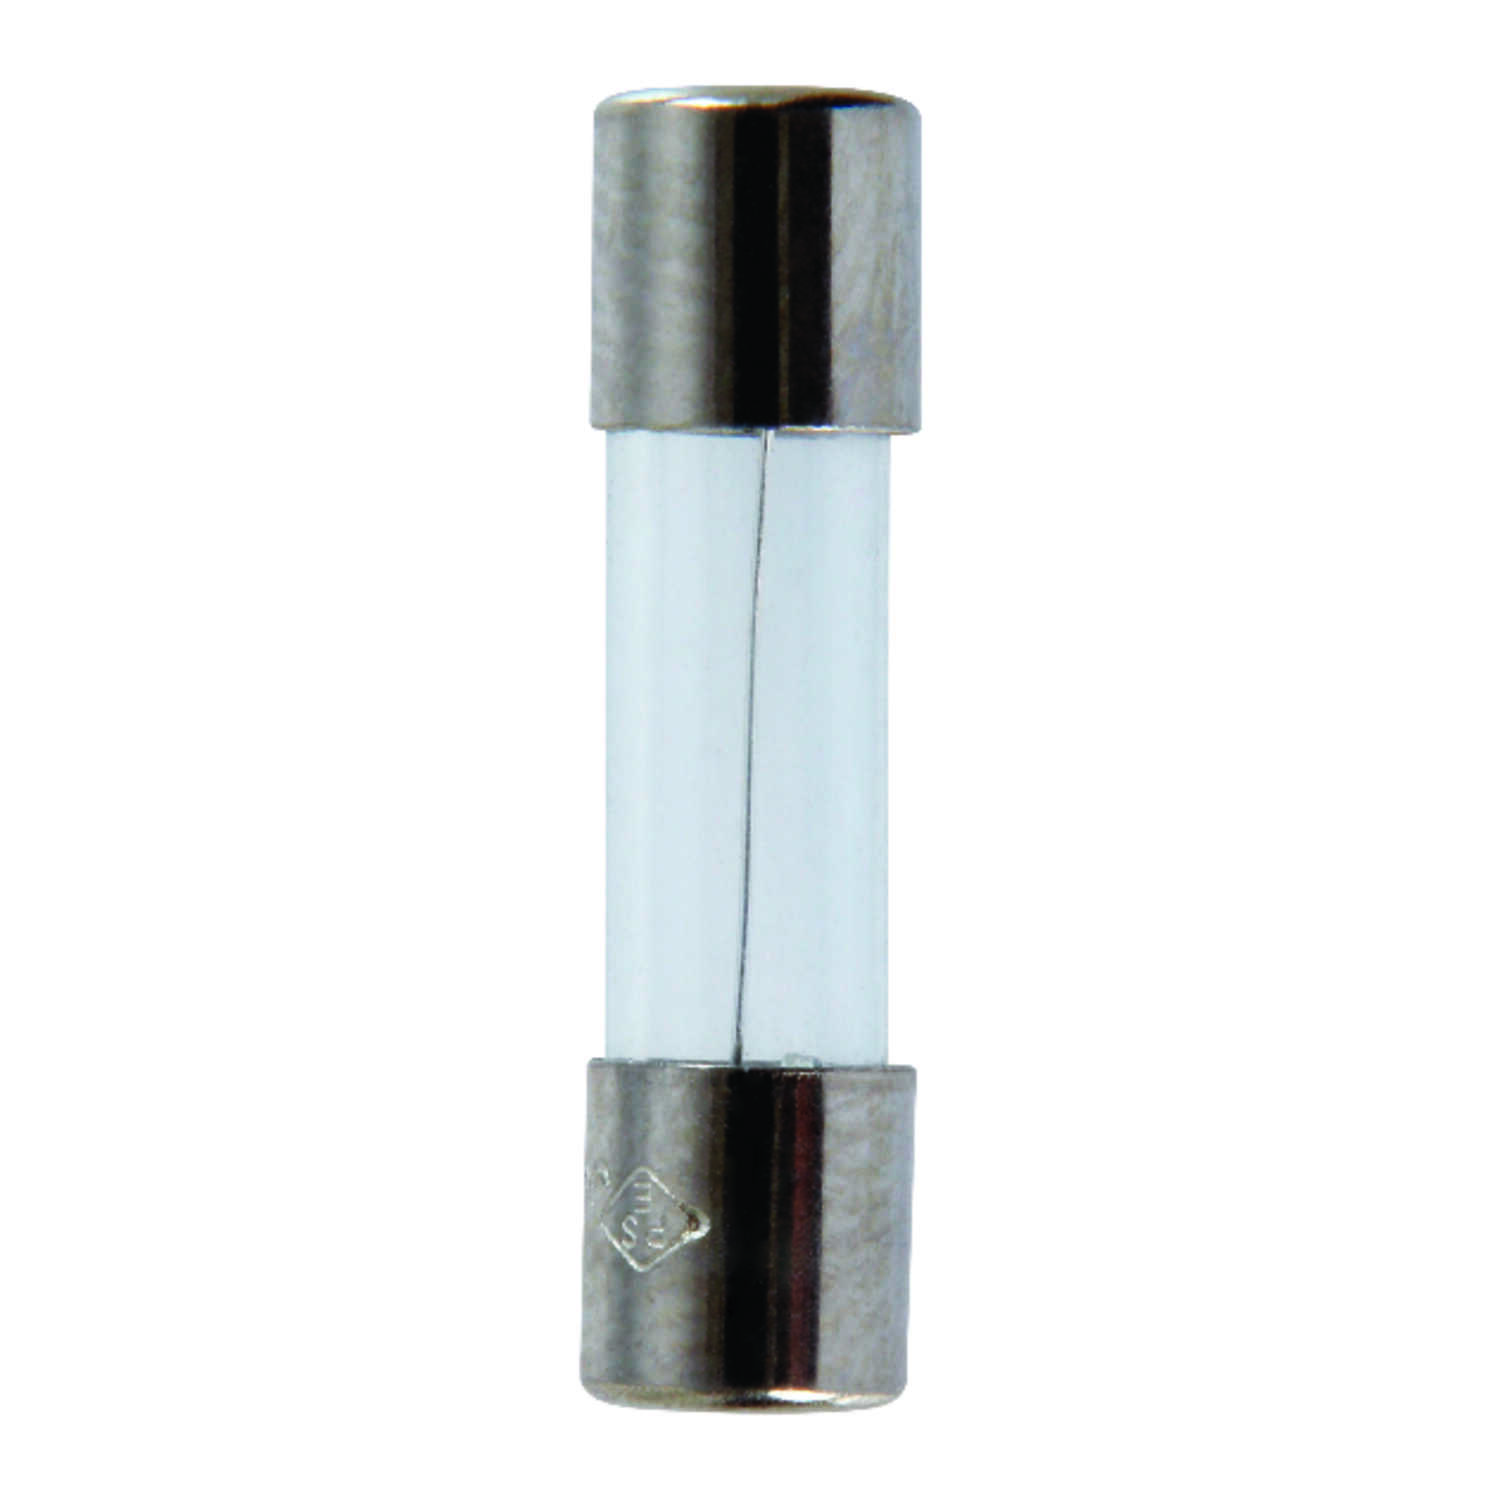 Jandorf  GMA  10 amps 125 volts Glass  Fast Acting Fuse  2 pk